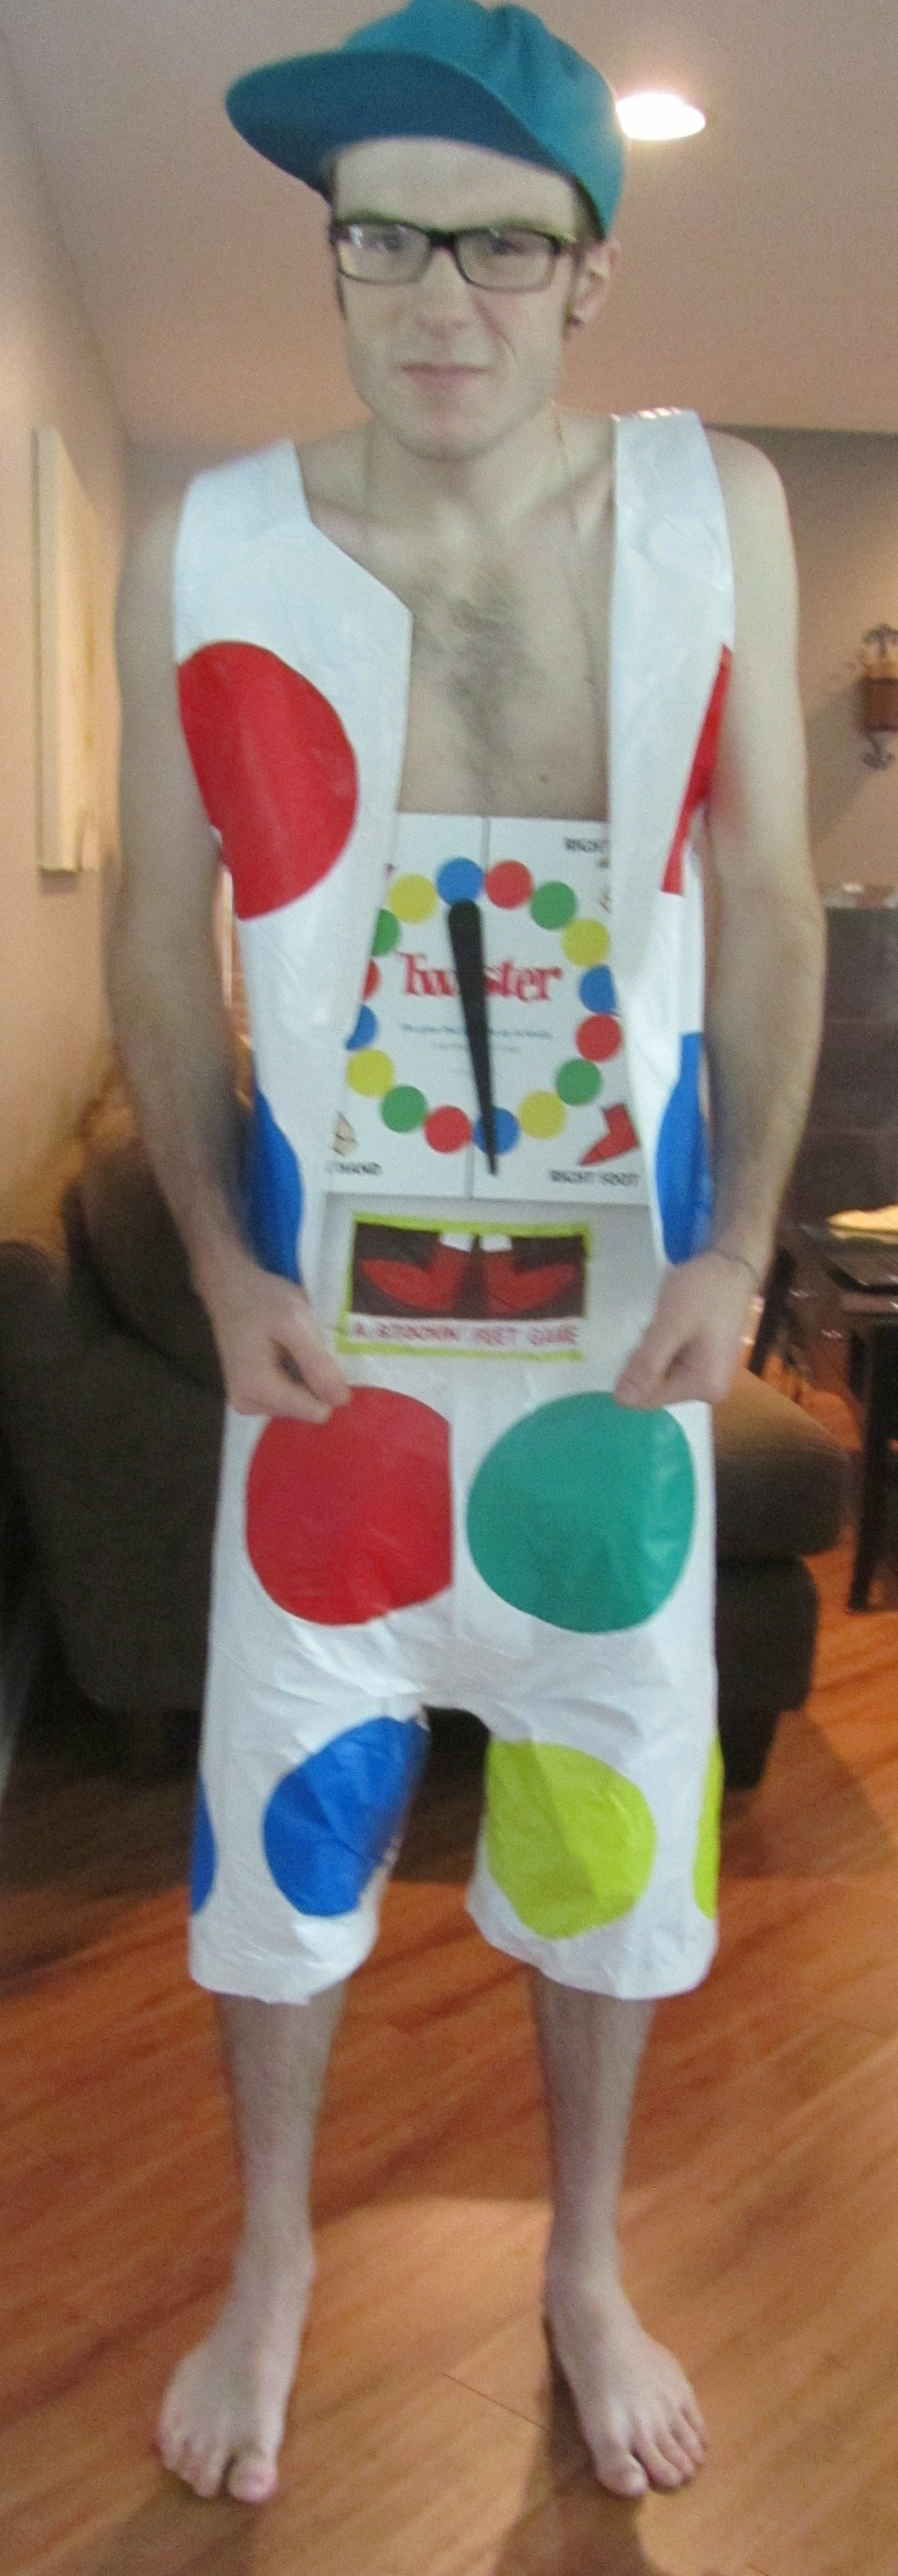 10 Amazing Abc Costume Ideas For Guys halloween or abc costume for men twister game into a great outfit 2021